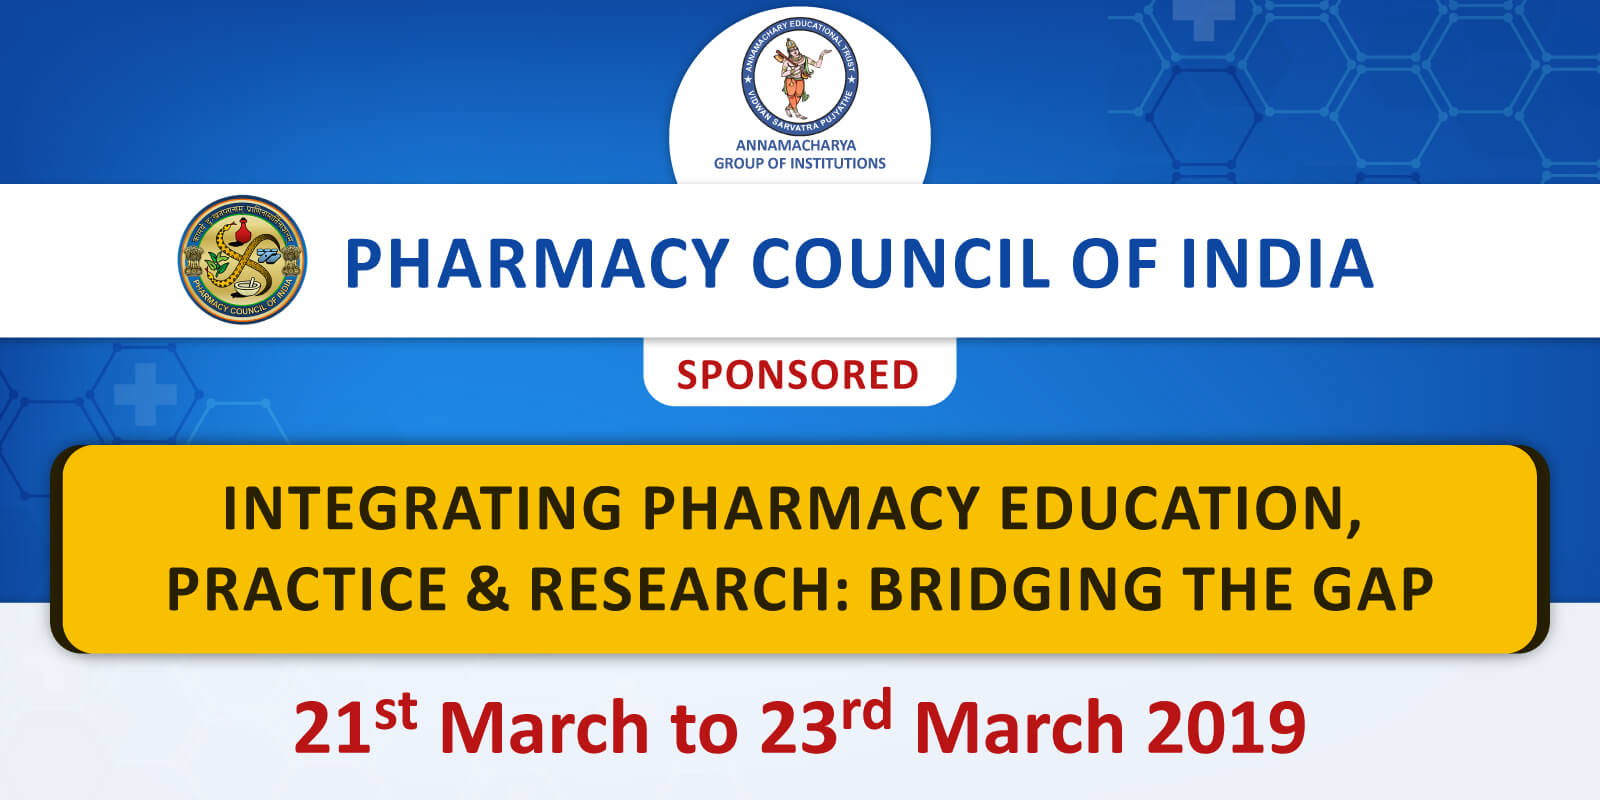 Integrated Pharmacy Education, Practice & Research